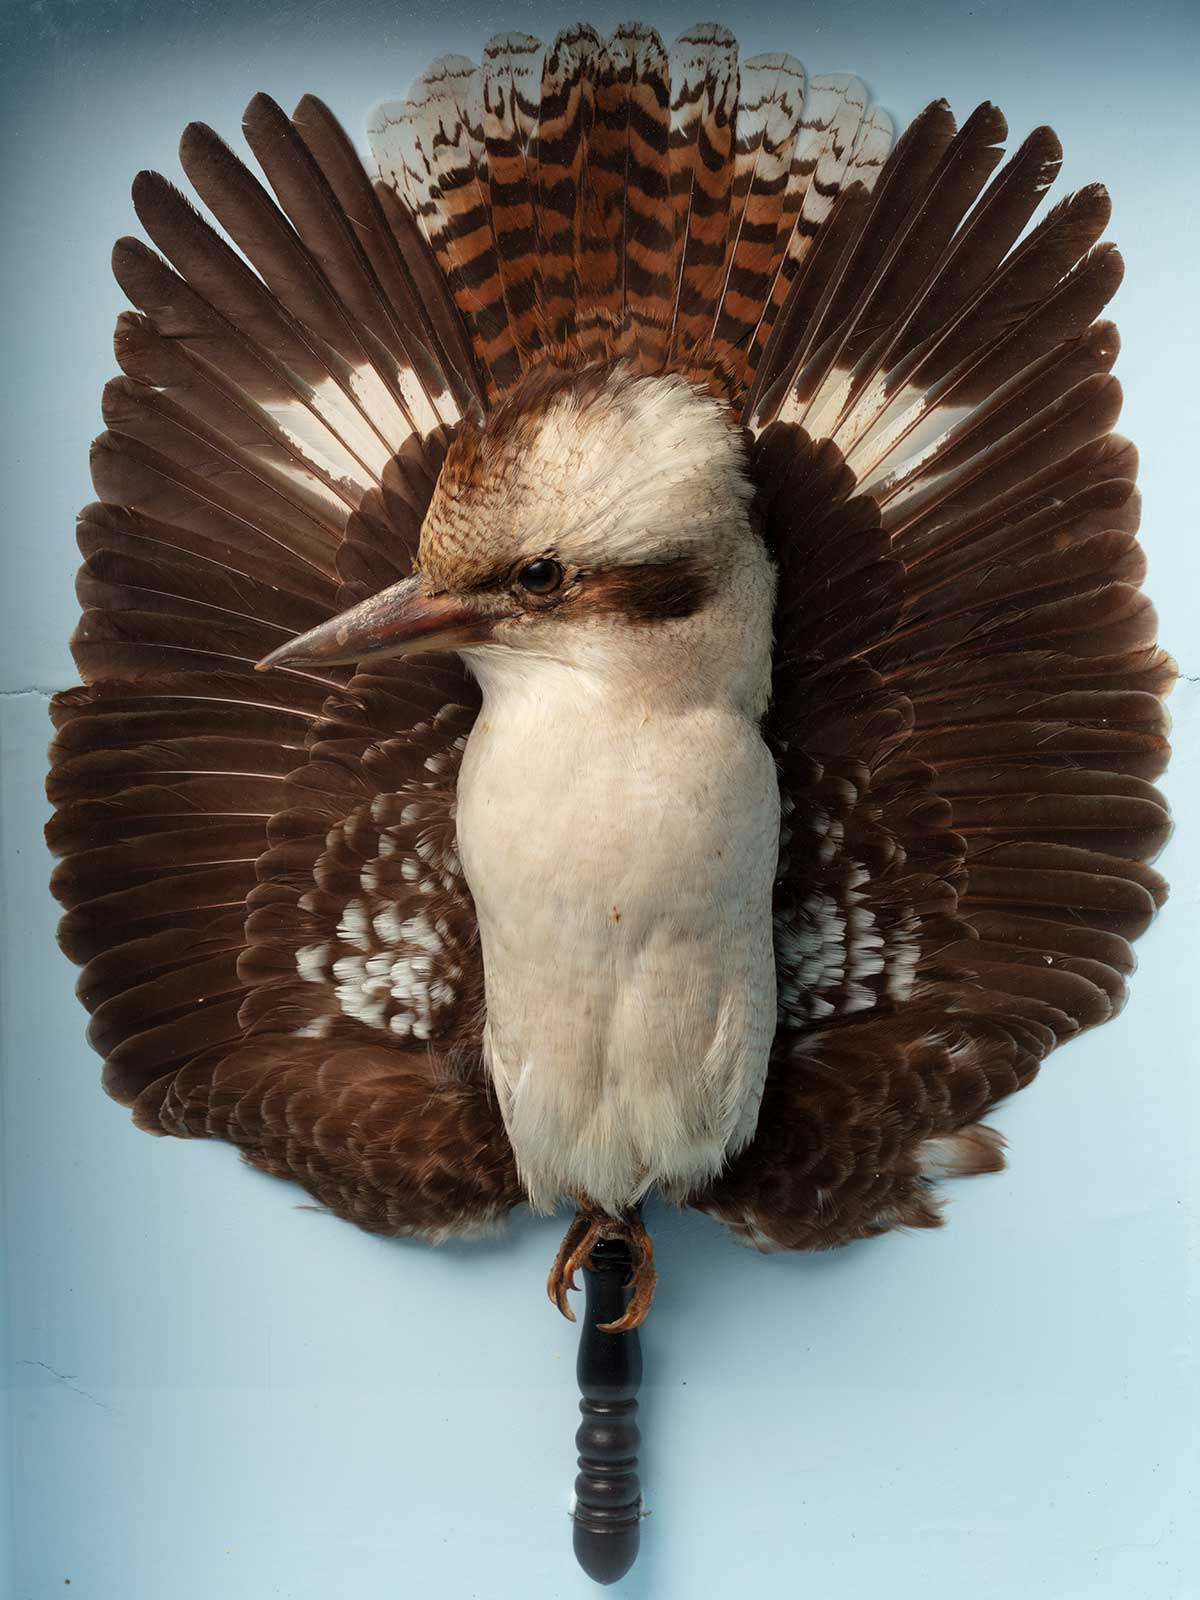 Taxidermied bird displayed with brown wings behind it in the form of a fan.  - click to view larger image